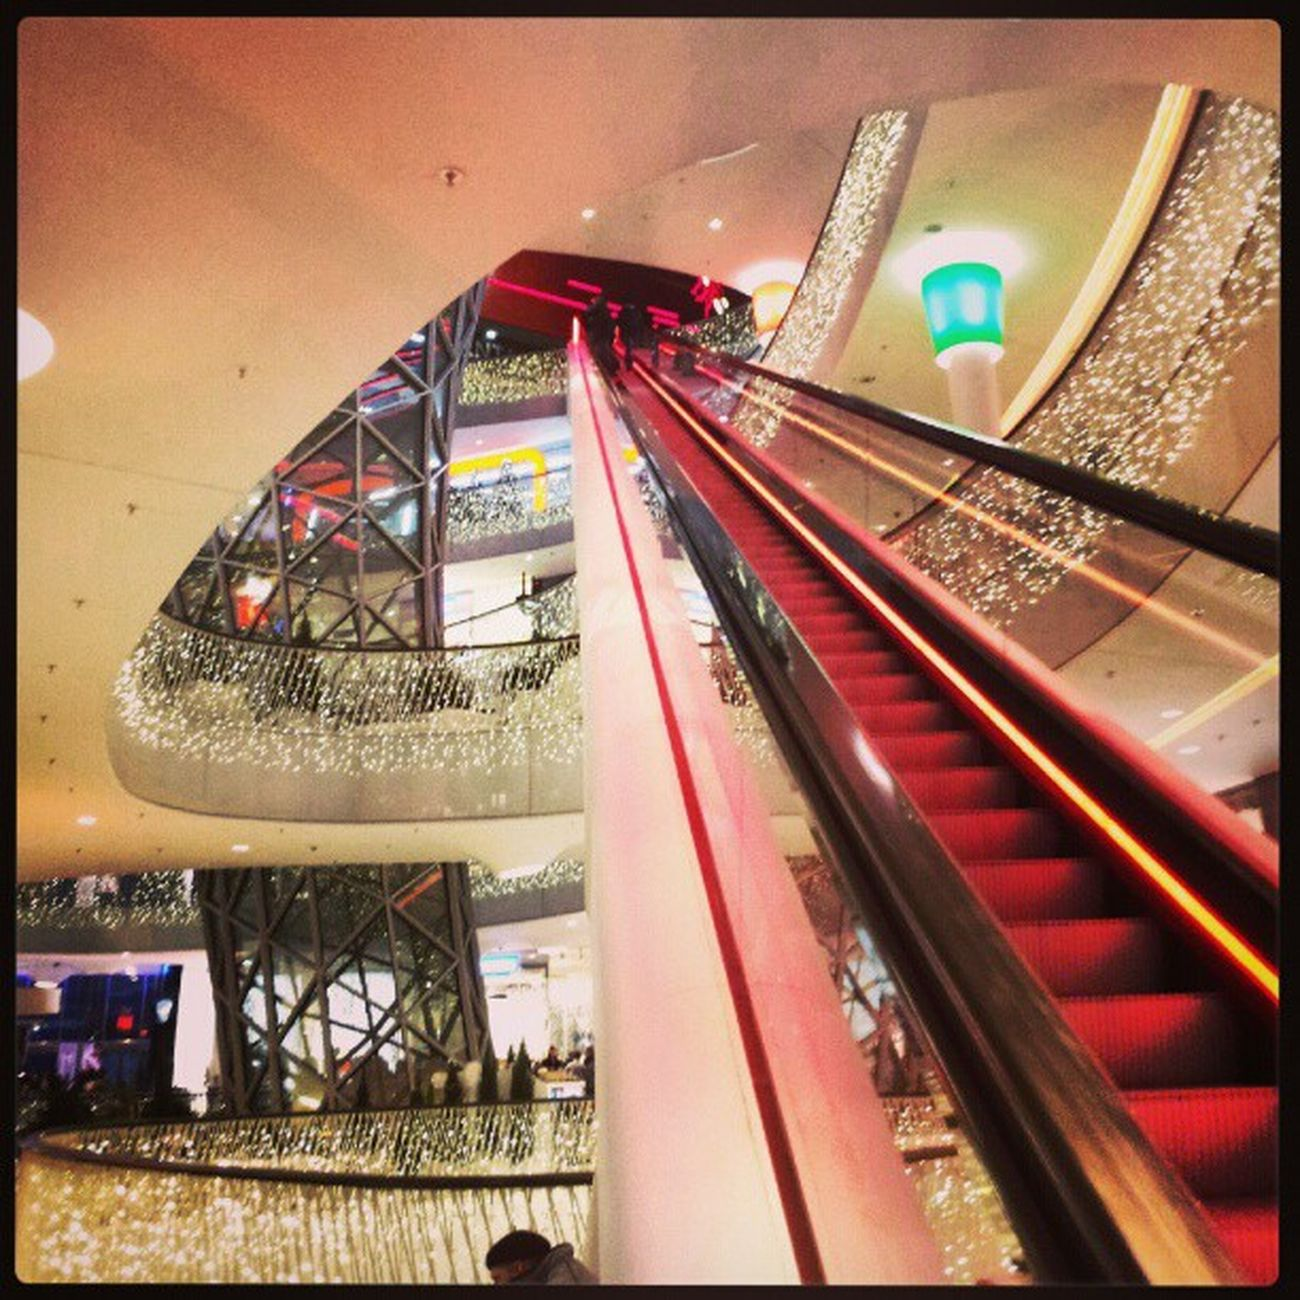 #germany #frankfurt #zeil #city #escalator #igers #igfamos #instgramm #instagood #shoping Igfamos Instgramm Escalator City Germany Frankfurt Shoping Igers Zeil Instagood